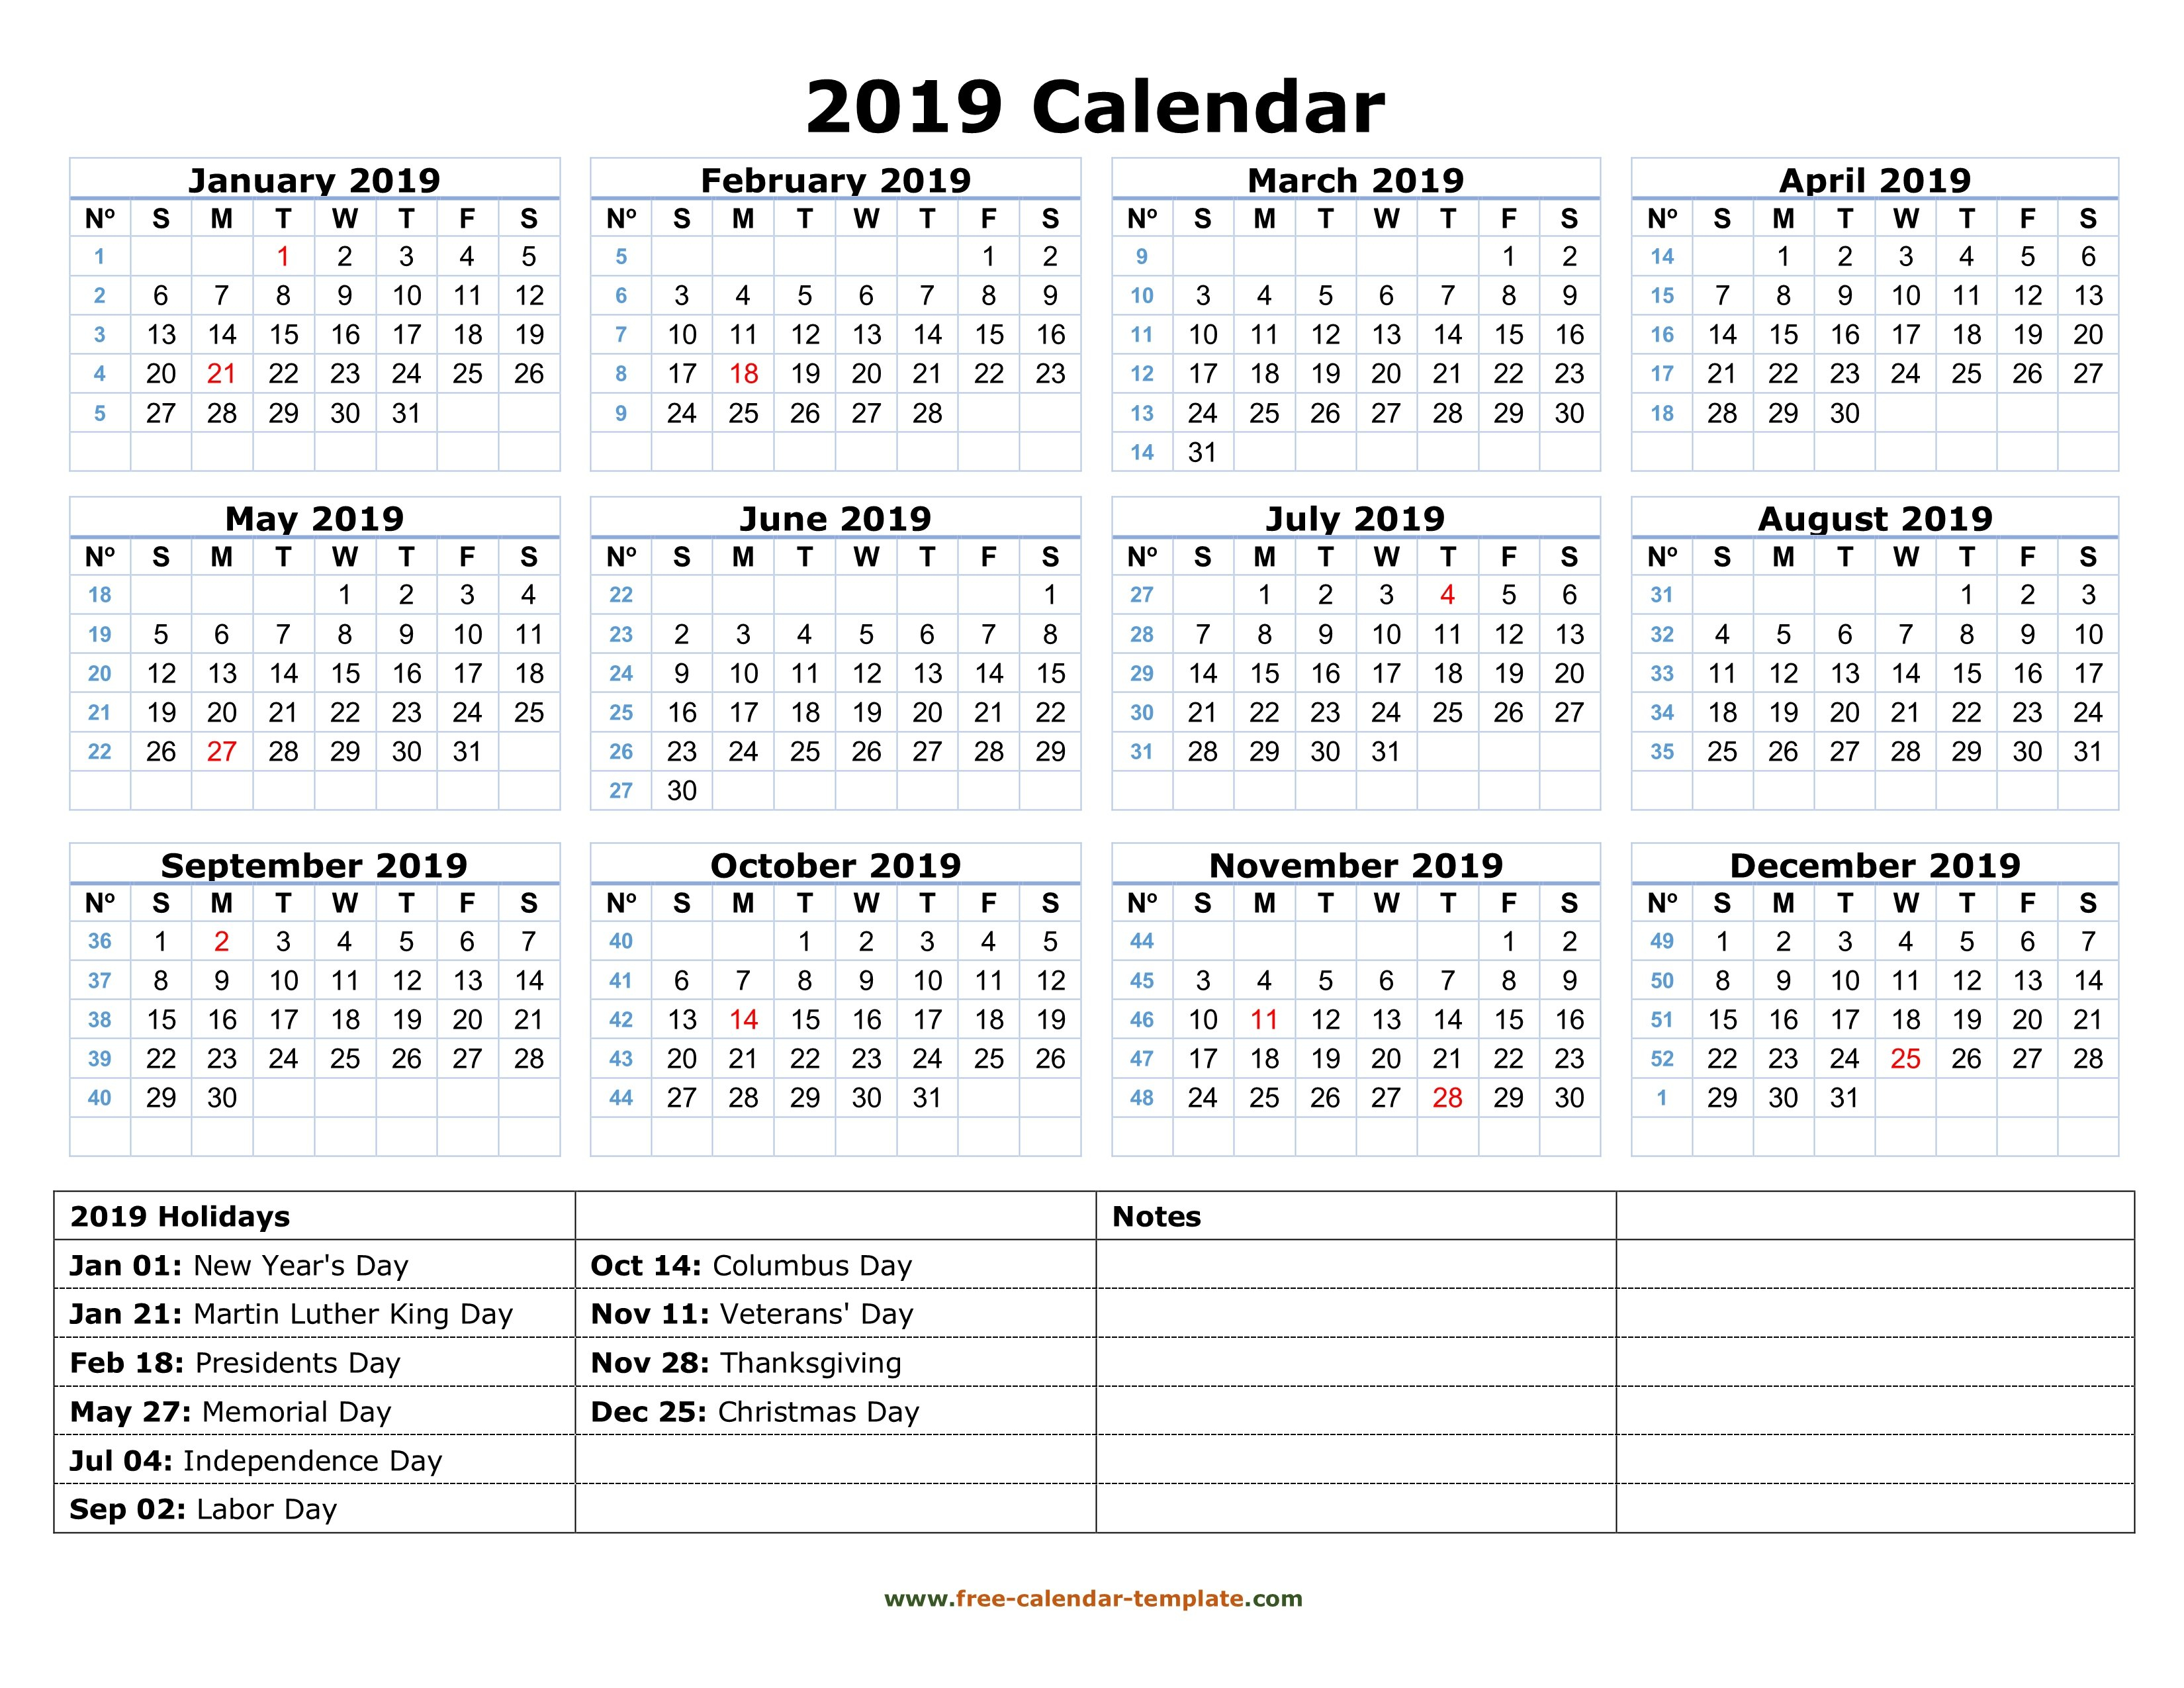 Printable Yearly Calendar 2019 With Us Holidays | Free Calendar Calendar 2019 All Holidays